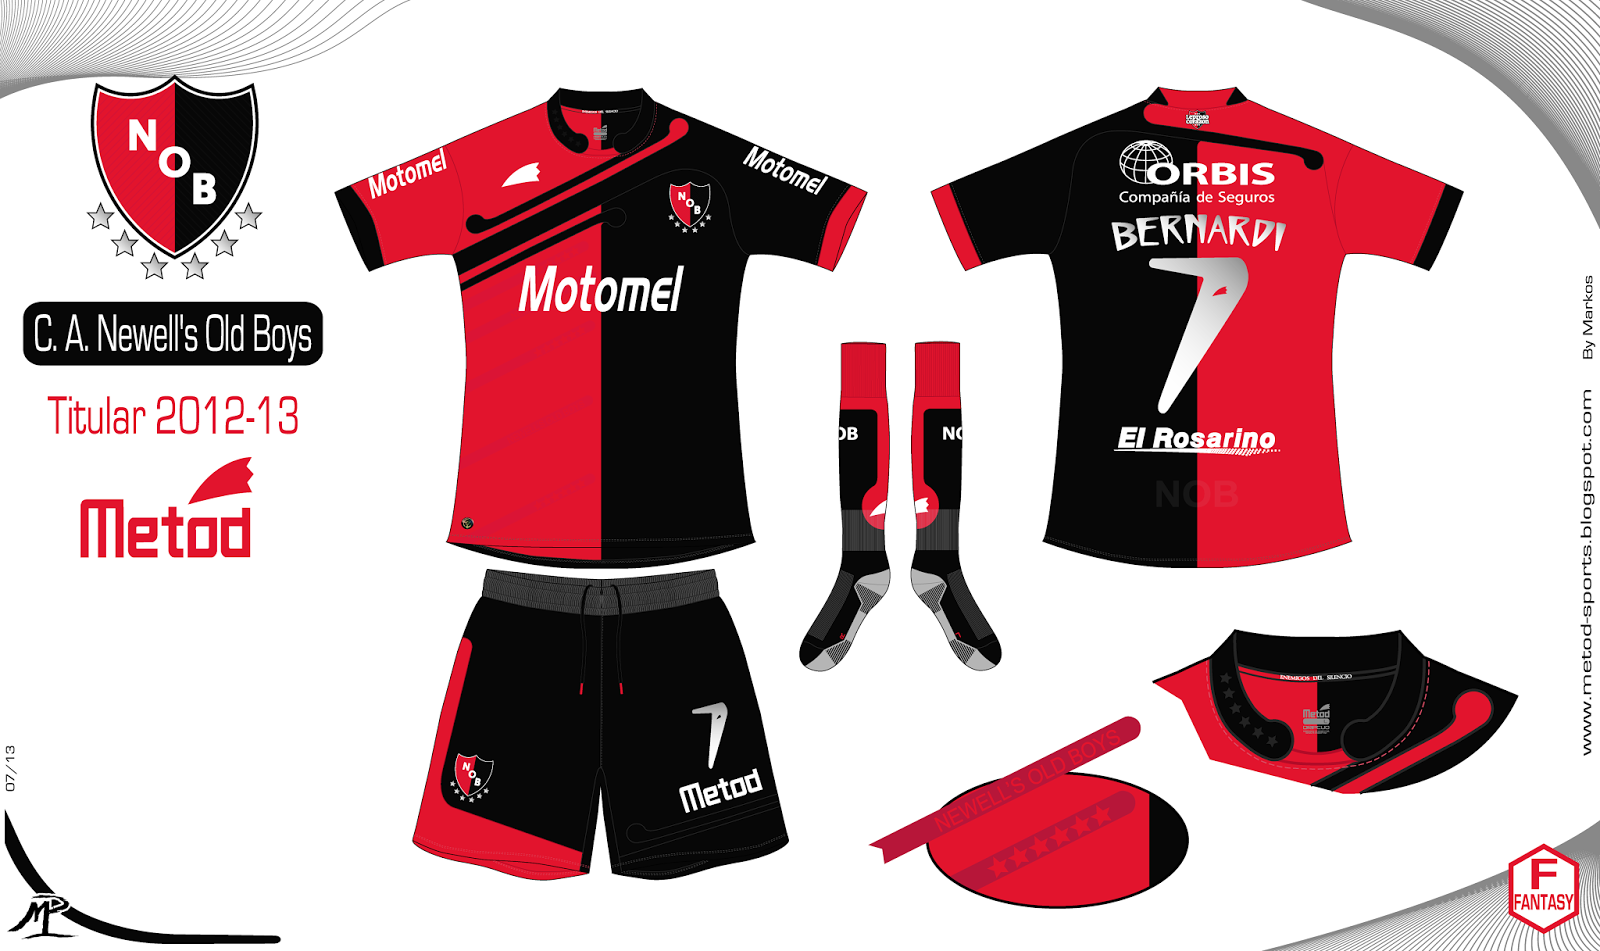 Newells Picture: Metod Sports: Newell's Old Boys 2012-13 Metod